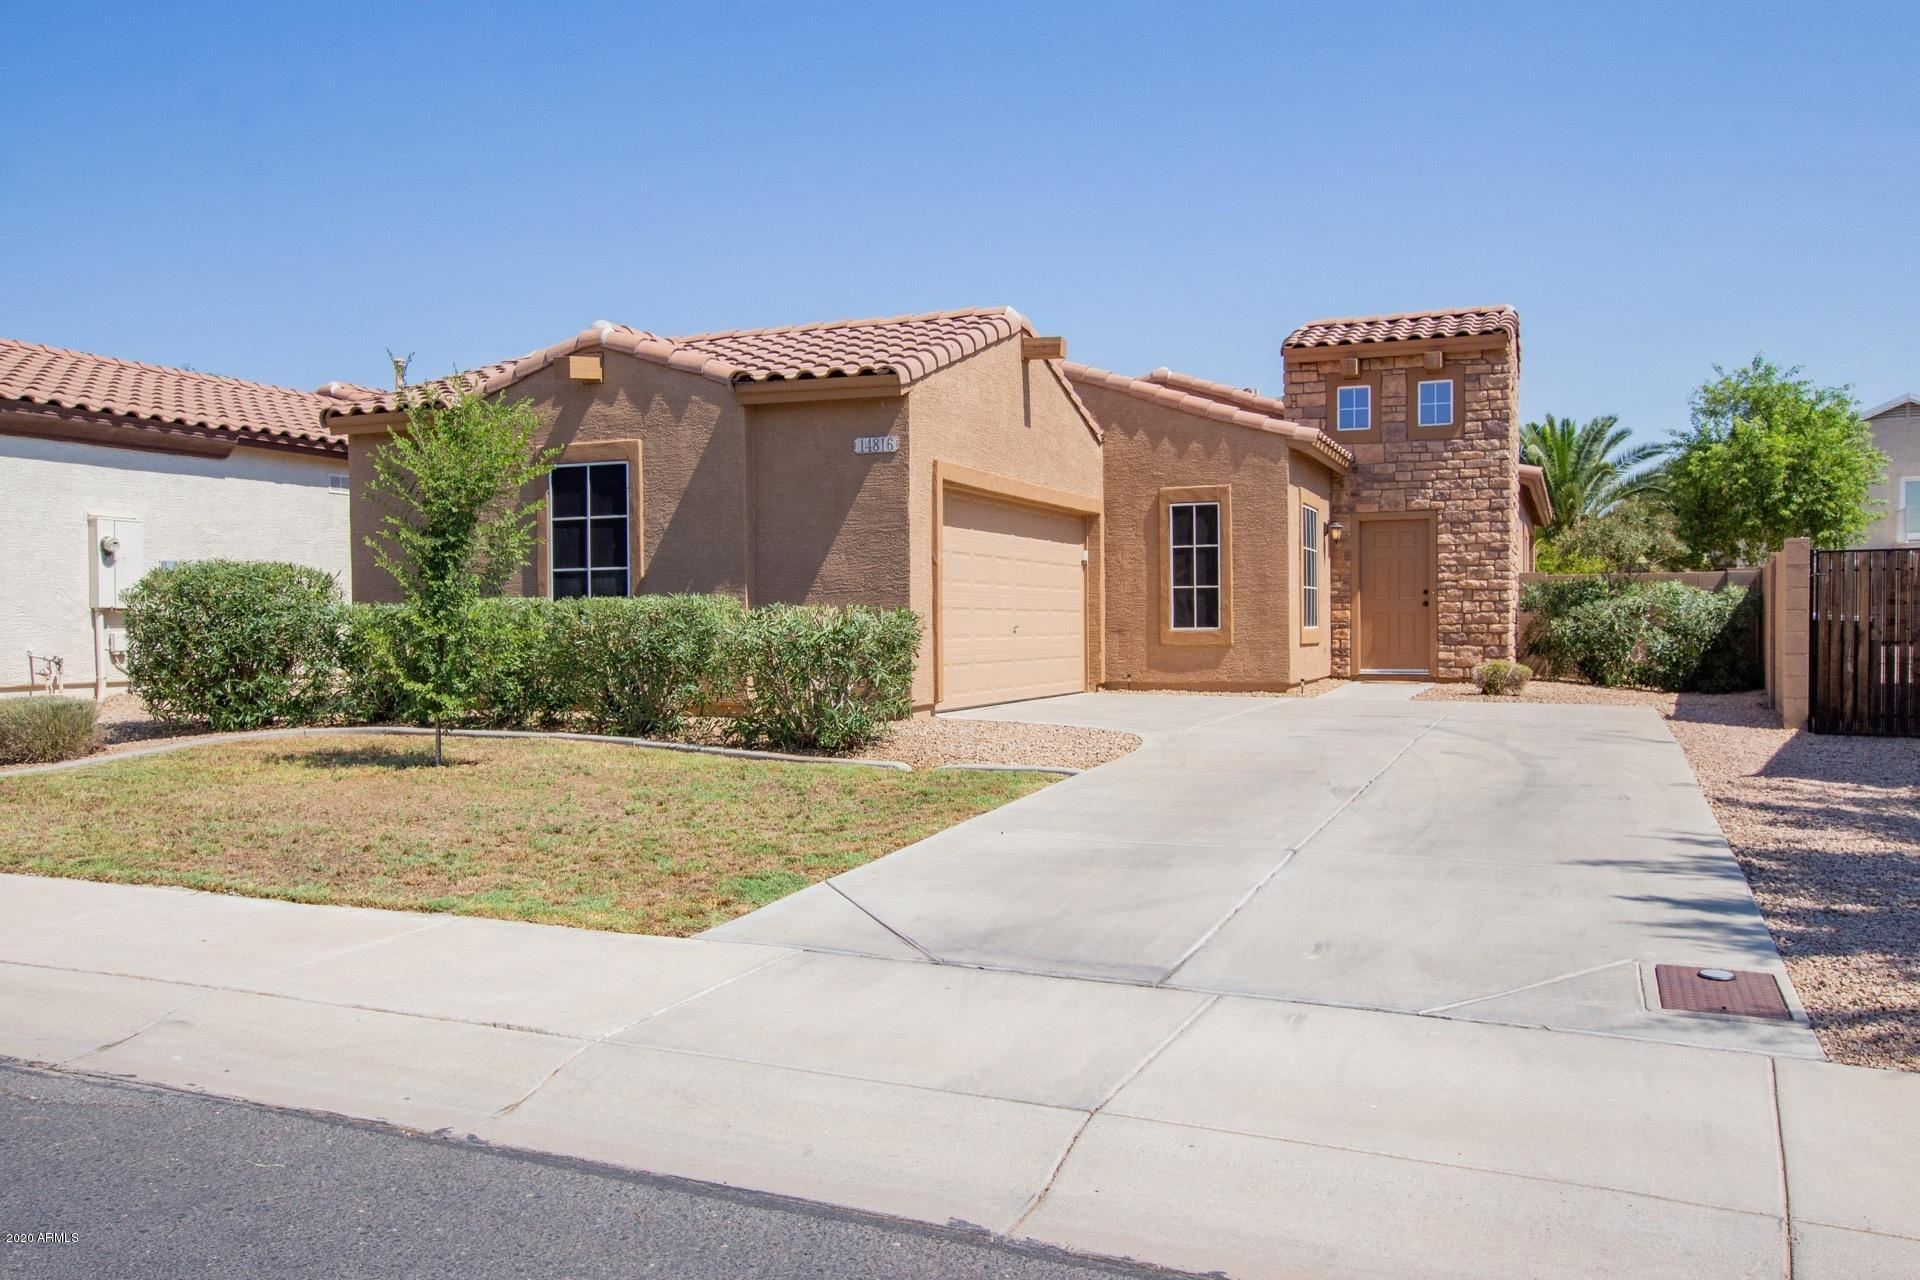 14816 W CHARTER OAK Road, Surprise, AZ 85379 - MLS#: 6094670